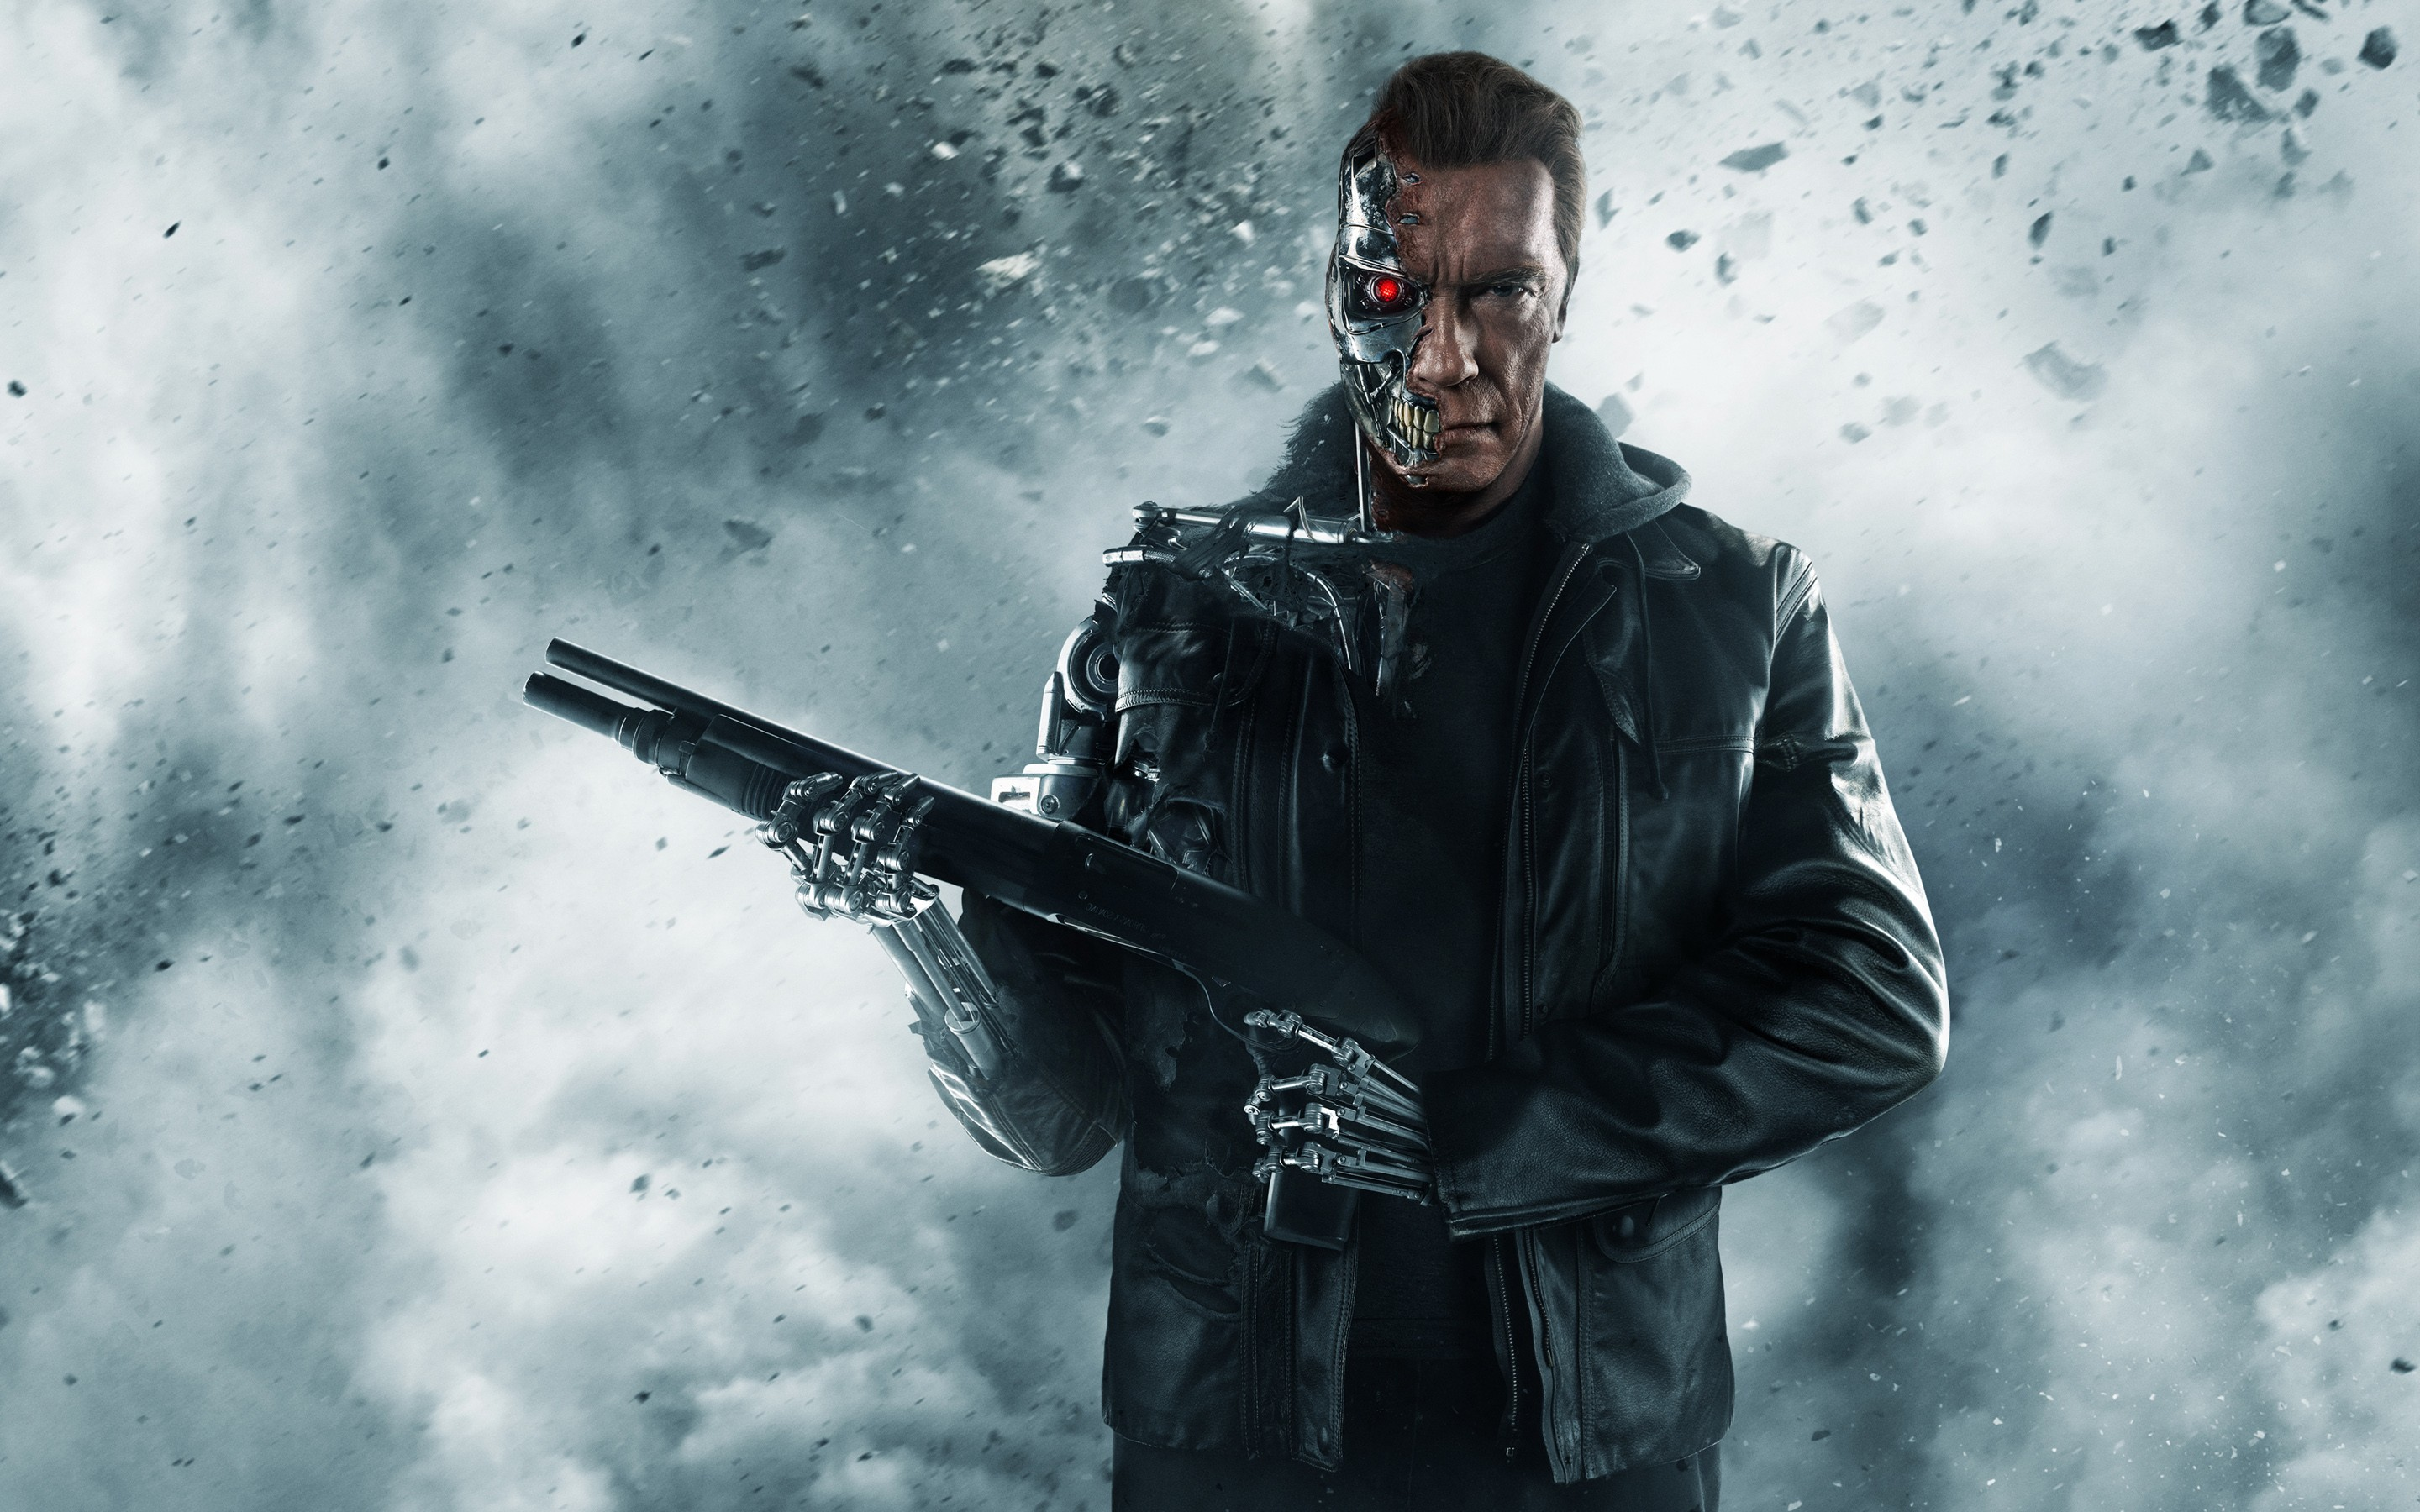 Arnold Schwarzenegger Terminator HD Movies 4k Wallpapers Images